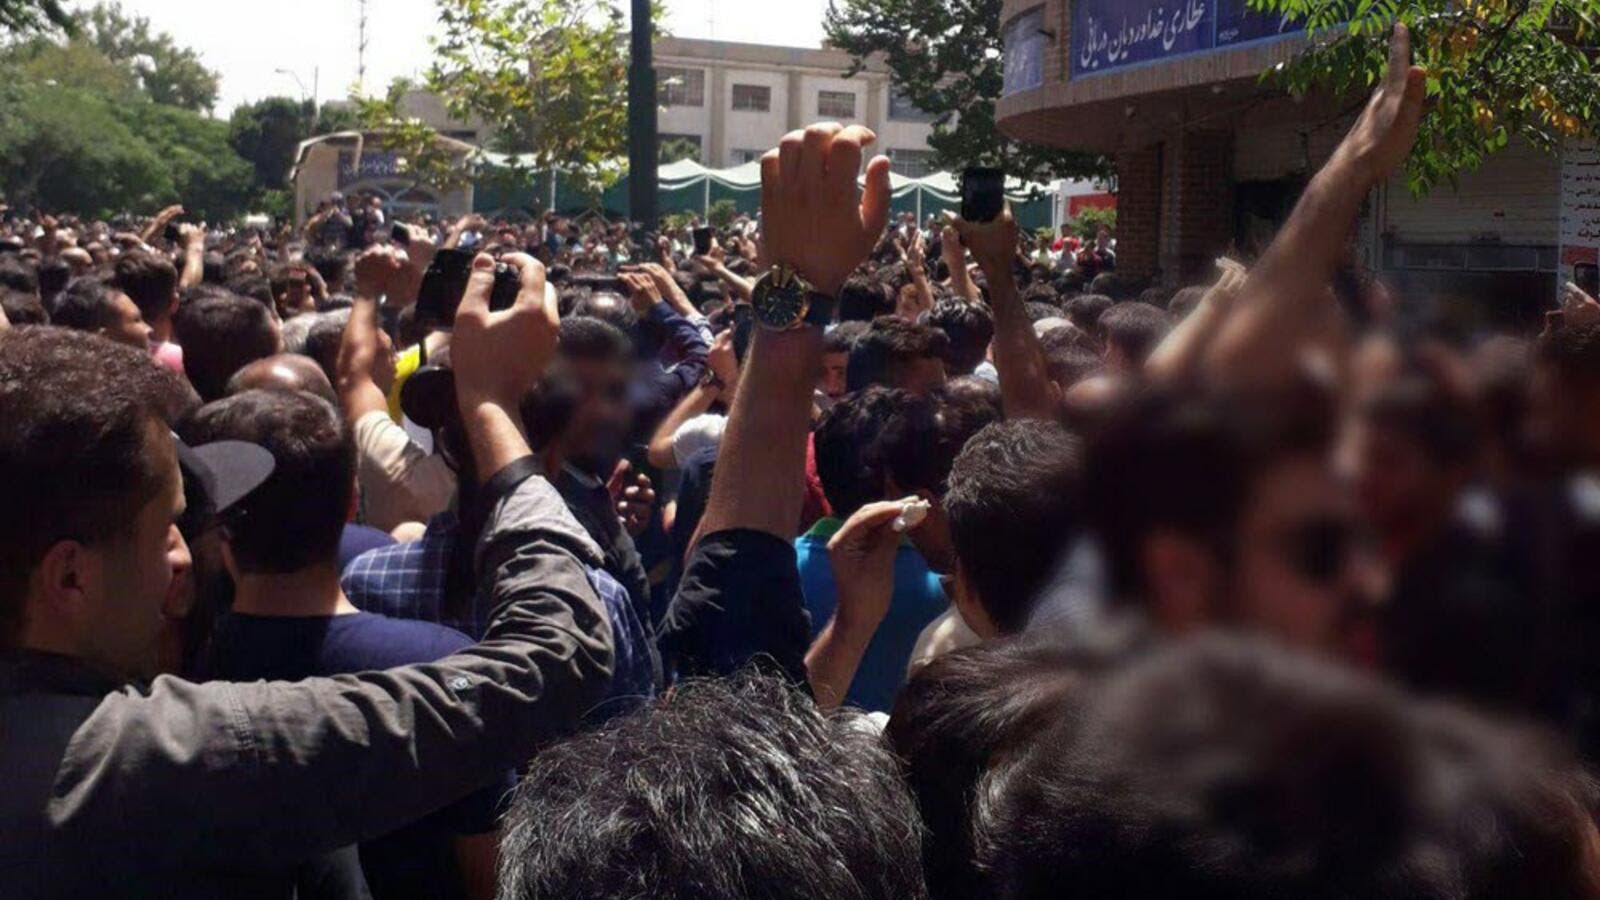 Iranians have been going on protests for three consecutive days without any local media coverage on the topic. (Twitter)